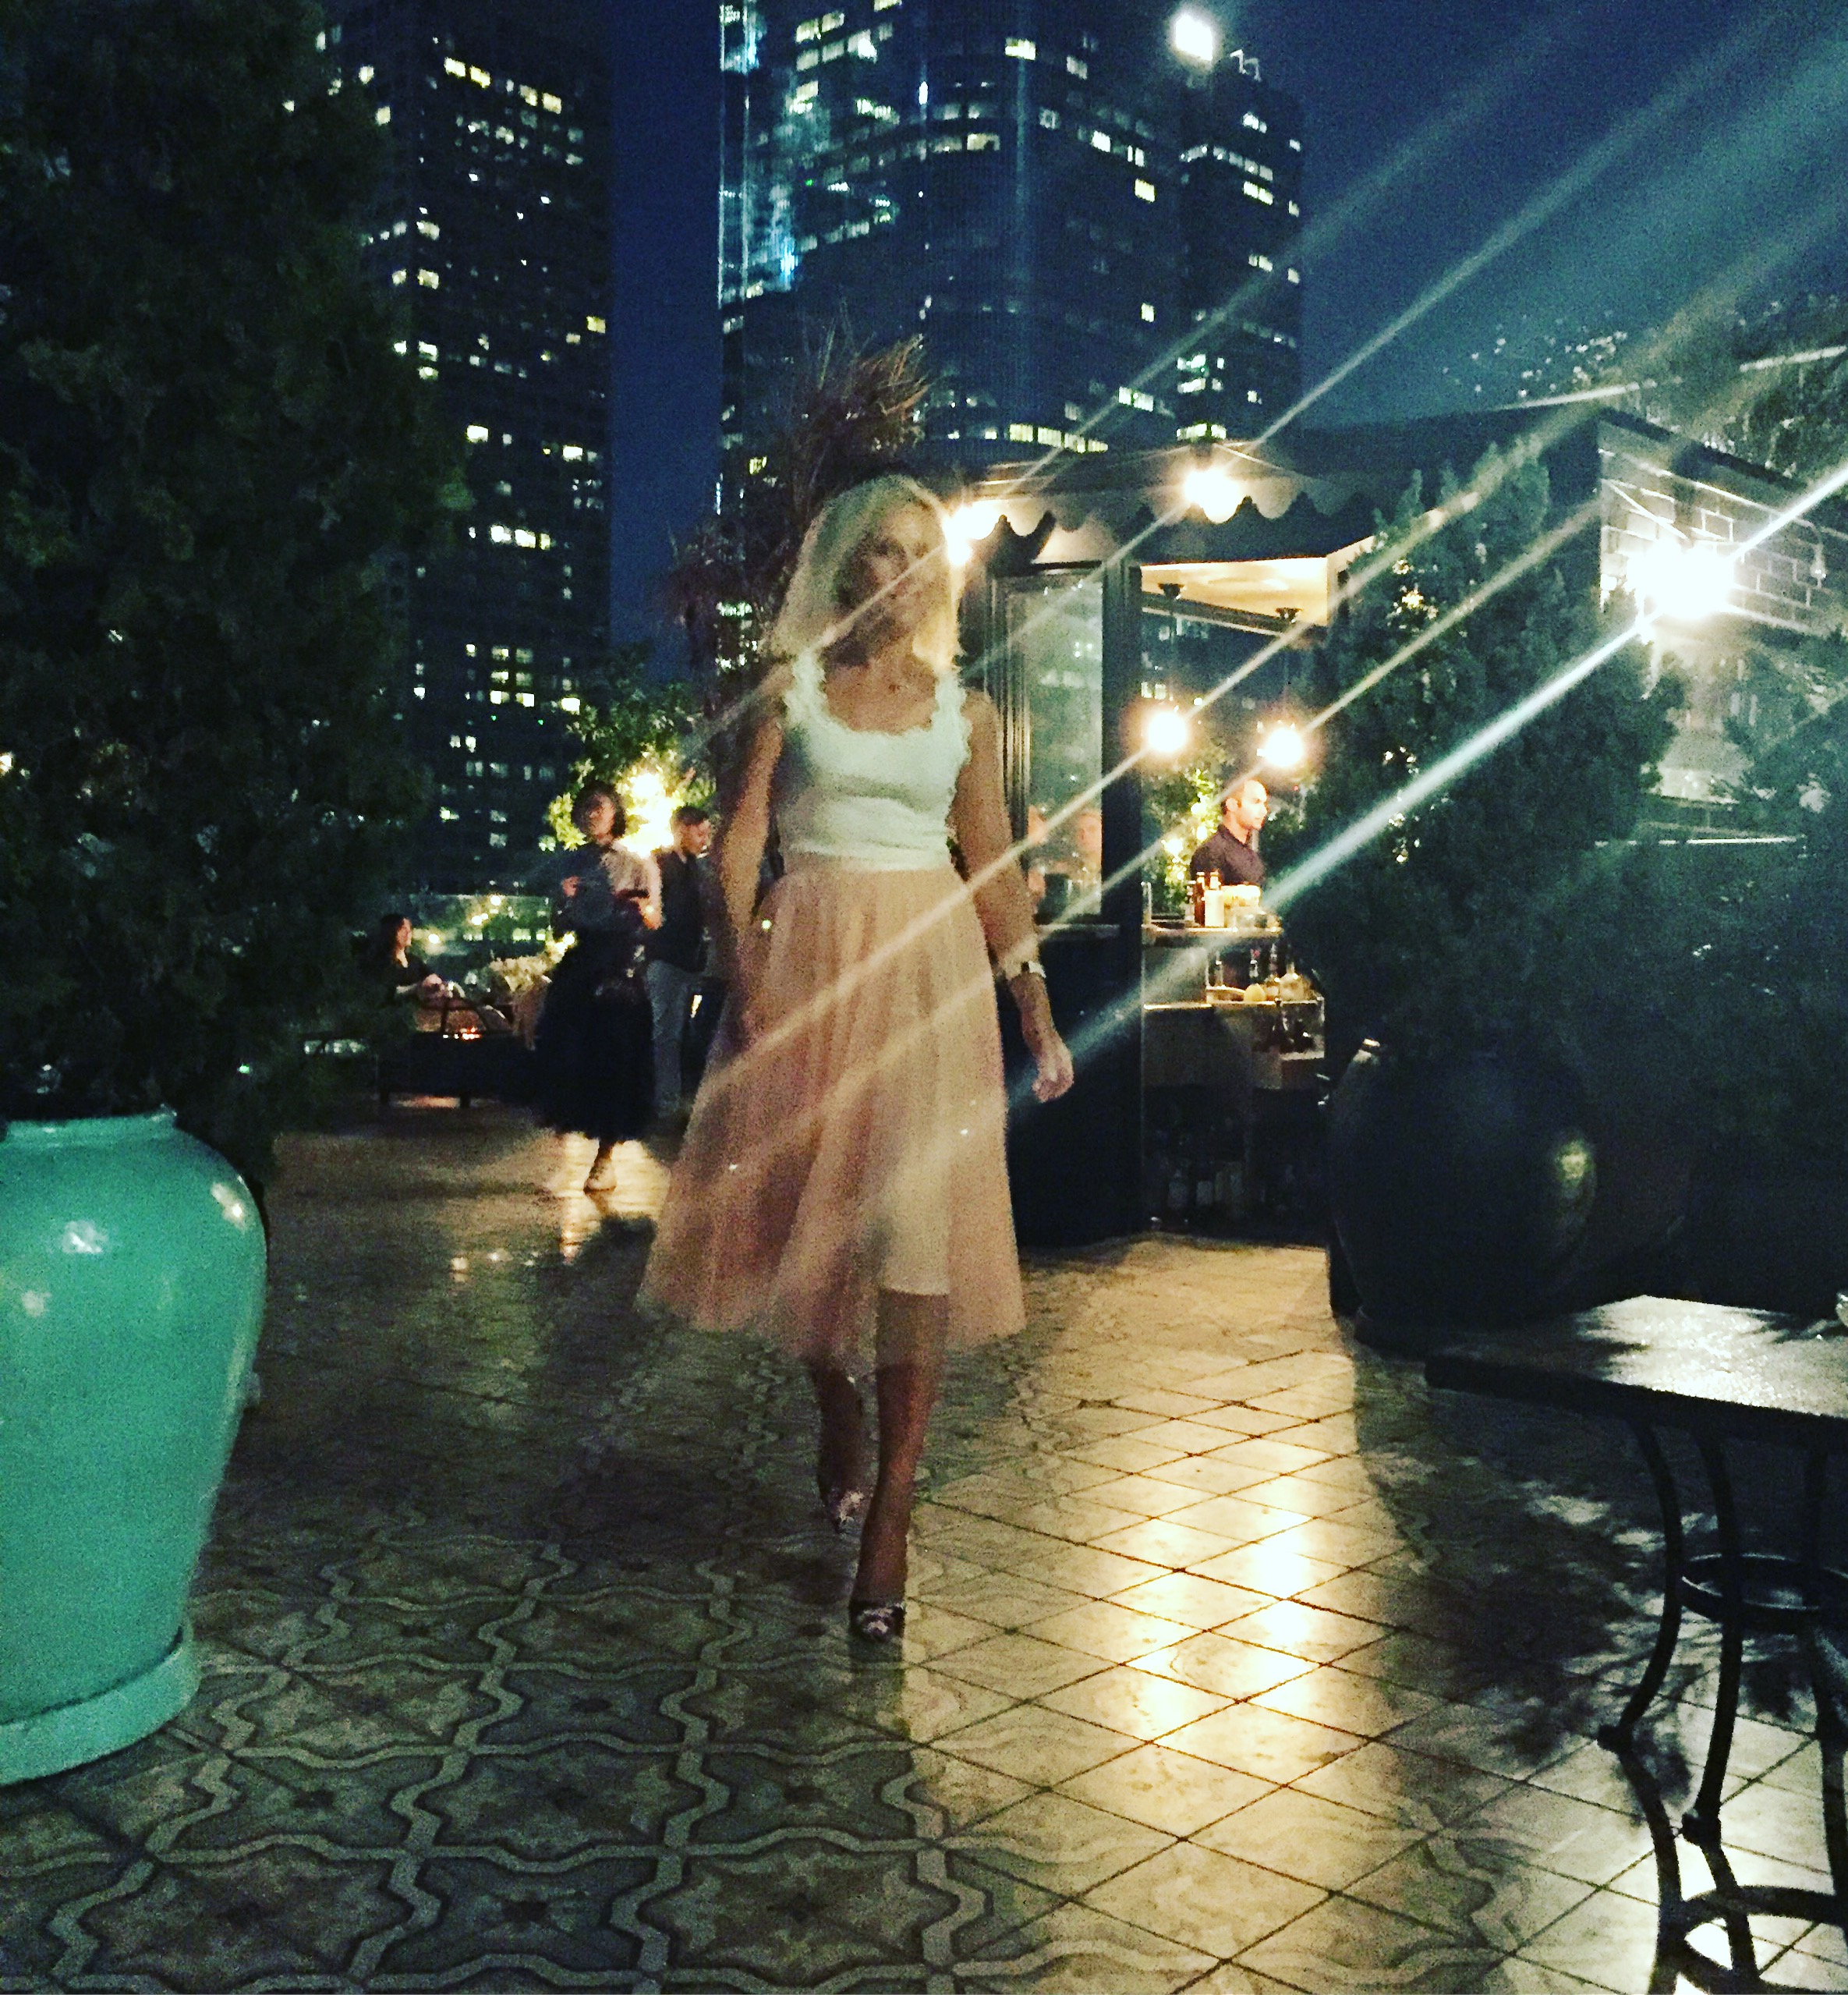 - Blog by johannaWelcome to my BlogI'm sharing music,life stories, events,travels, home decor, fashion and much more. I hope you'll enjoy it!Don't hesitate to reach out to me. I'd love to hear from you!Love,Johanna